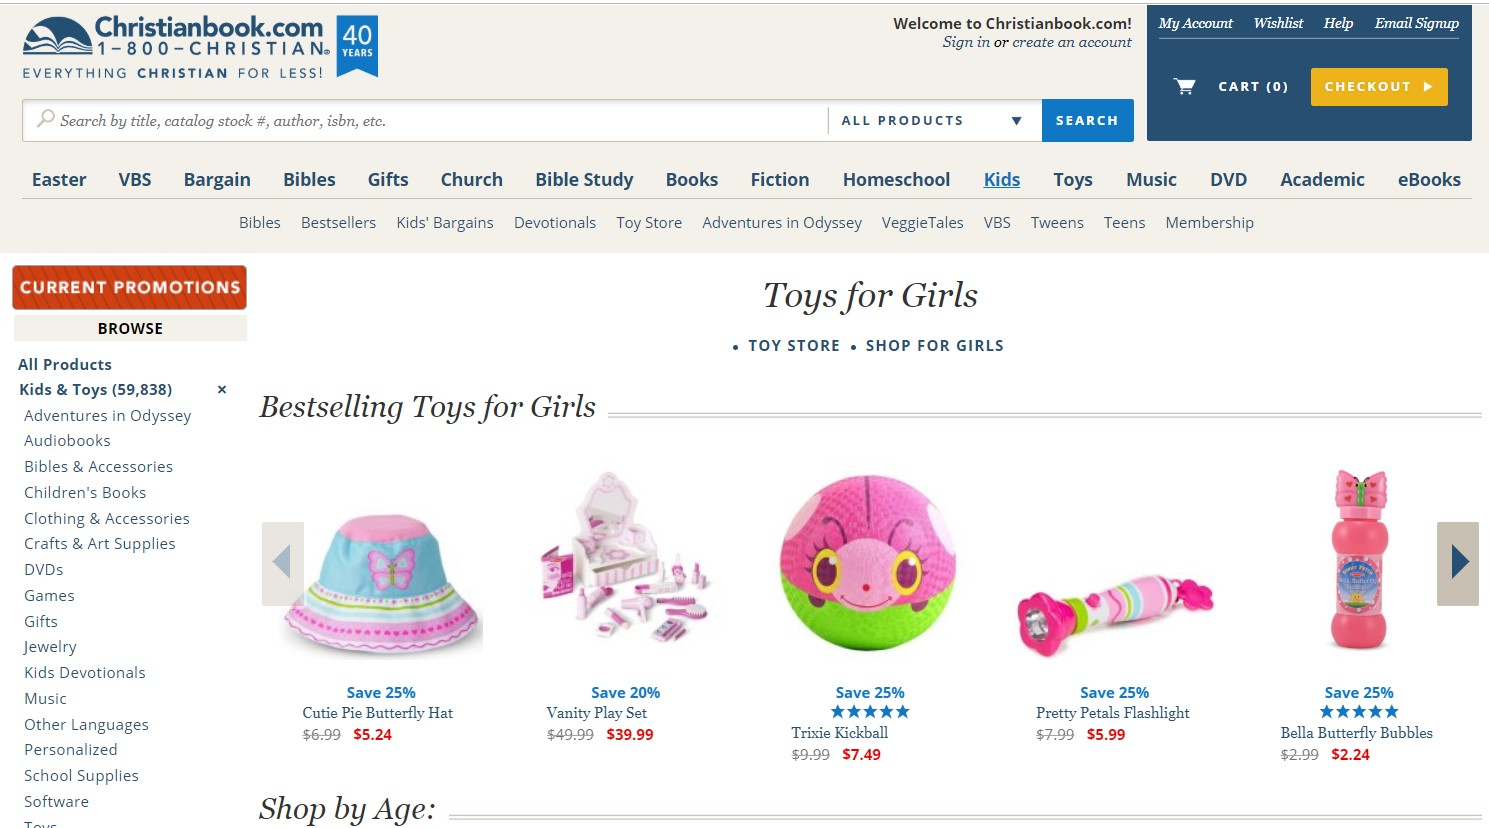 A screenshot of the website Christianbook.com (Toys for Girls)